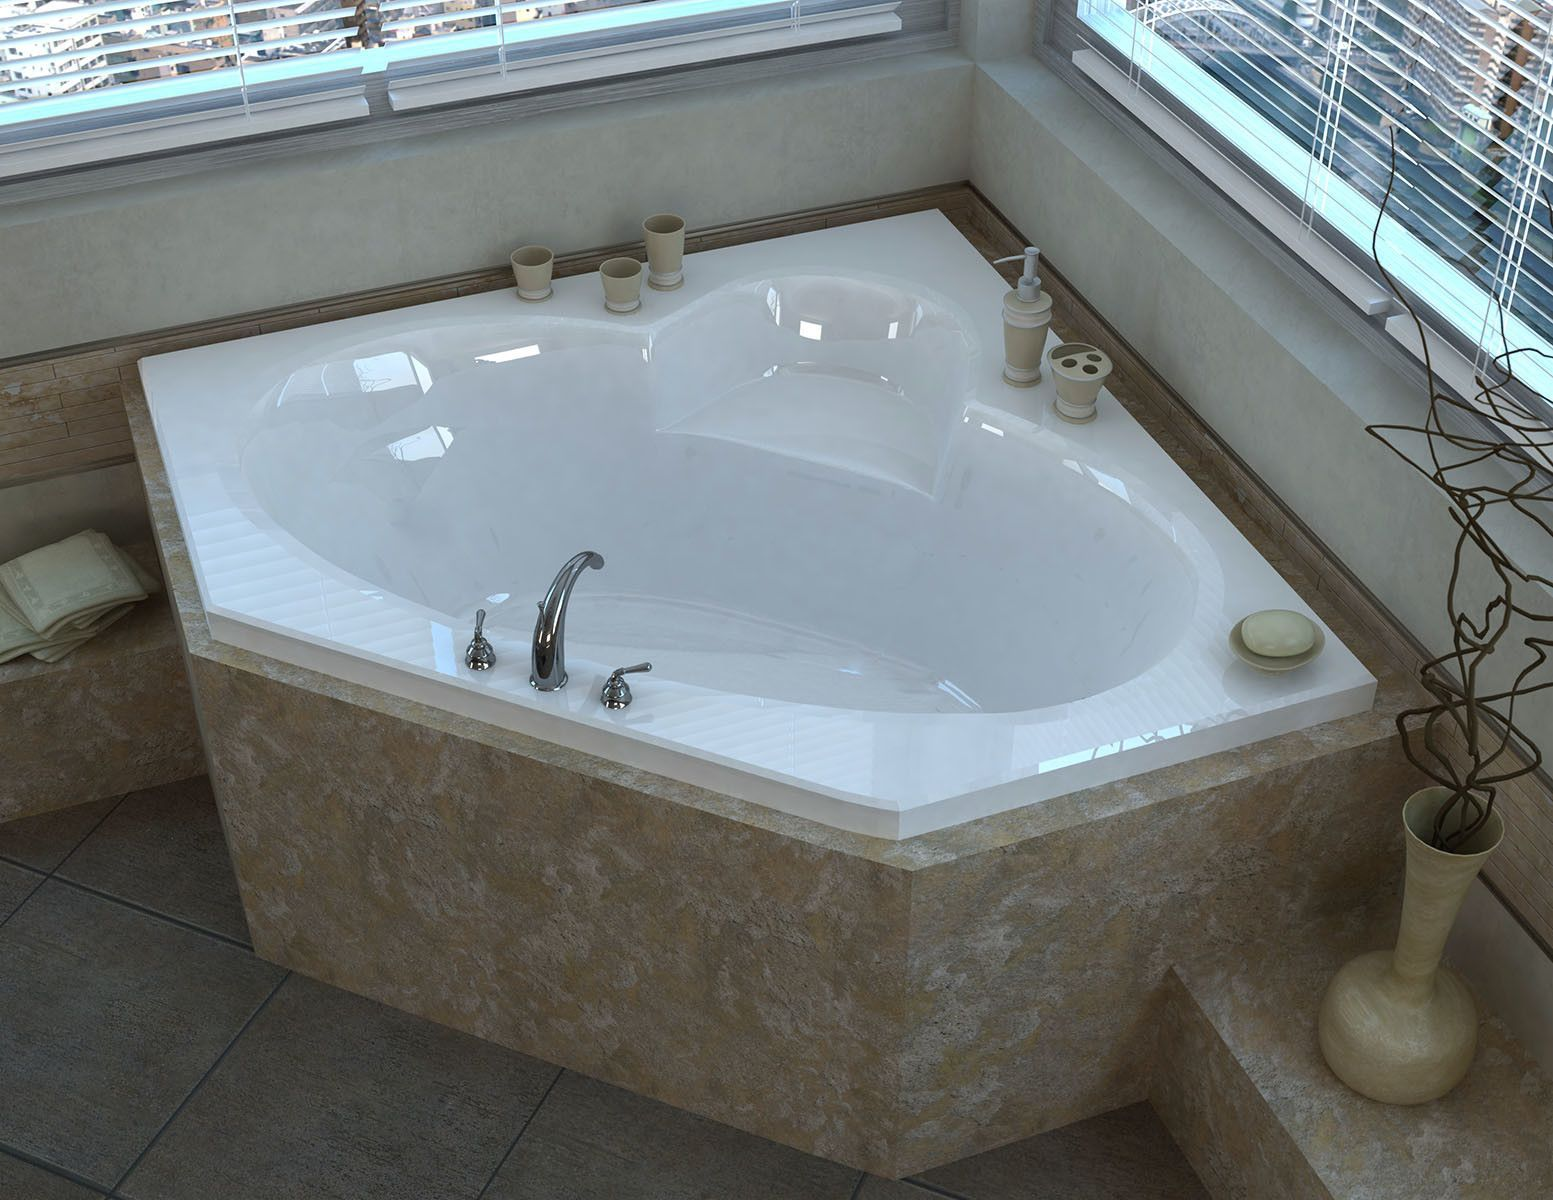 Curacao 82 X 67 Corner Soaking Bathtiub Jetted Bath Tubs